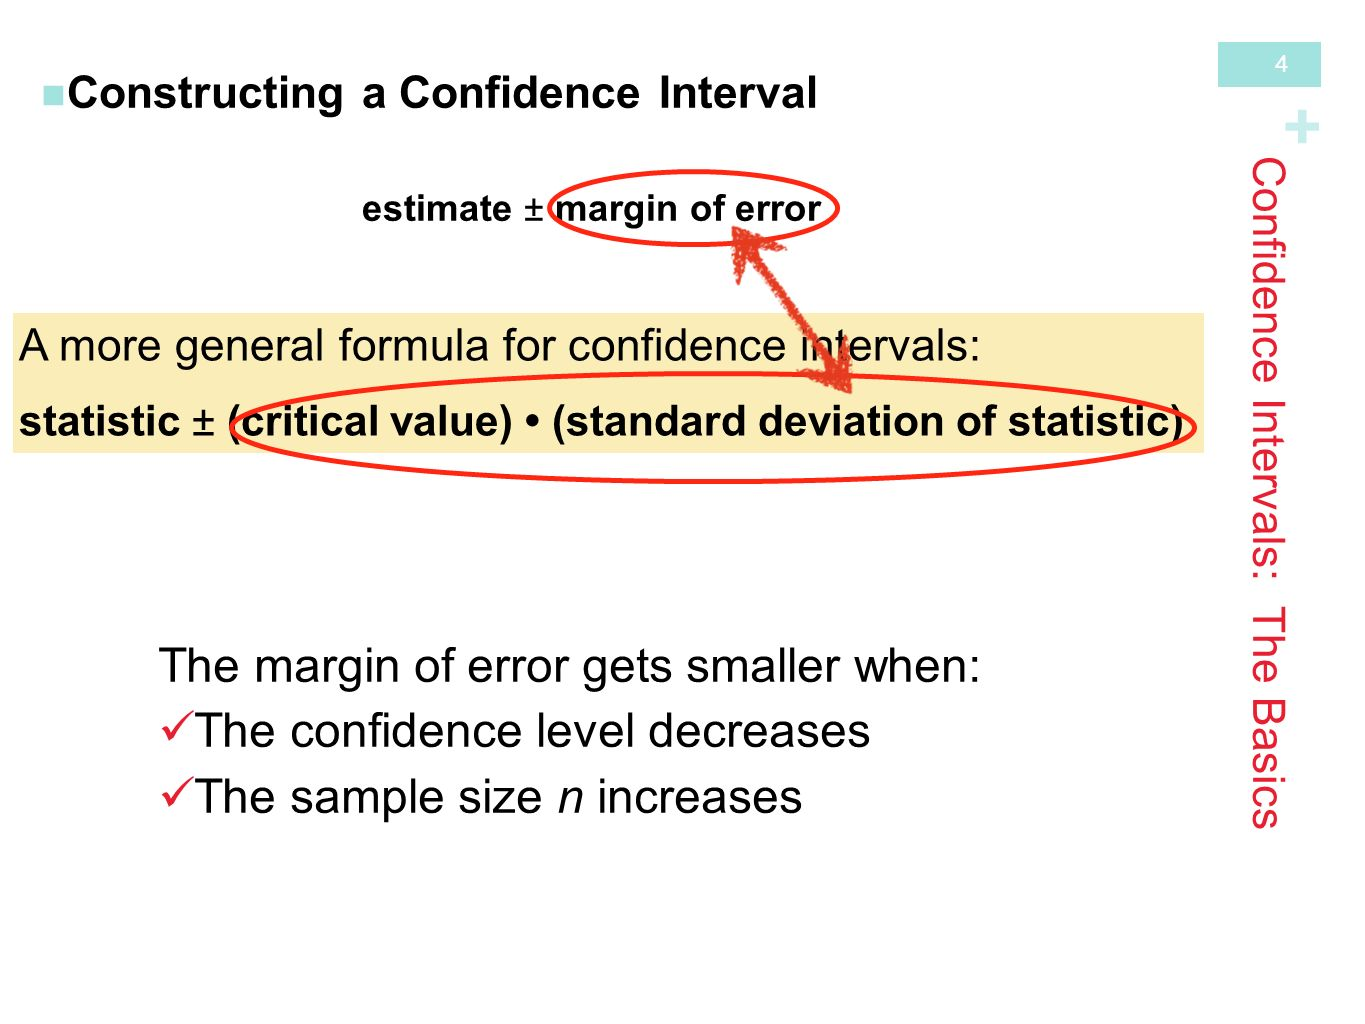 4 + 4 Constructing A Confidence Interval Estimate ± Margin Of Error A More  General Formula 28 Central Limit Theorem How To Calculate Standard  Deviation